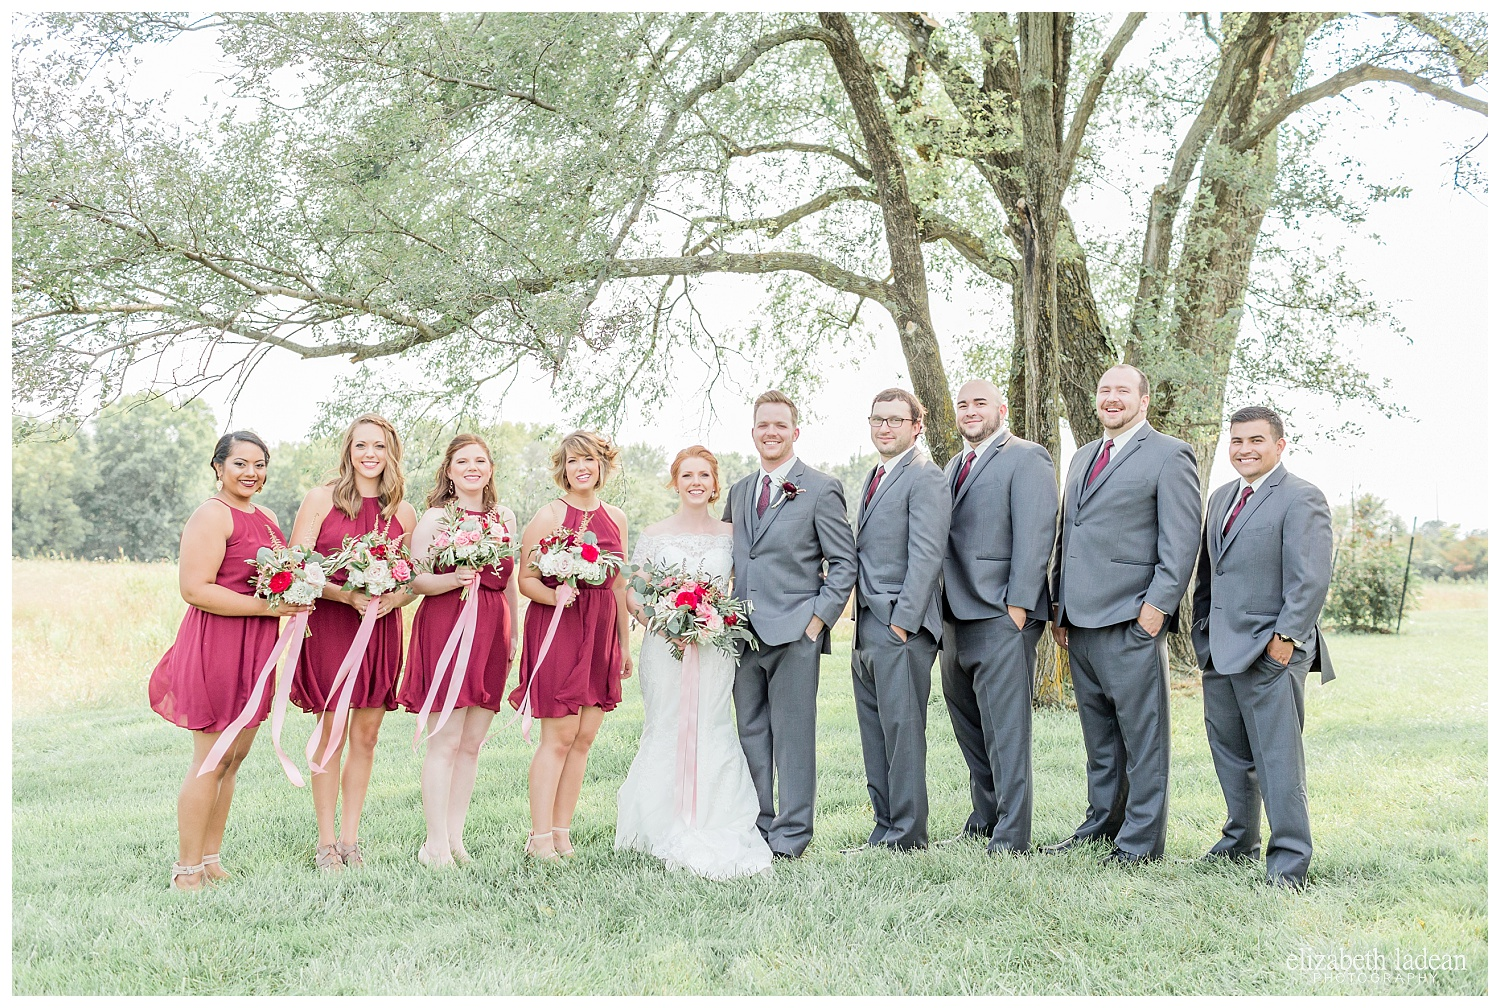 Burgundy-and-Gold-Wedding-Kansas-City-The-Legacy-at-Green-Hills-M+T0902-Elizabeth-Ladean-Photography-photo-_2274.jpg